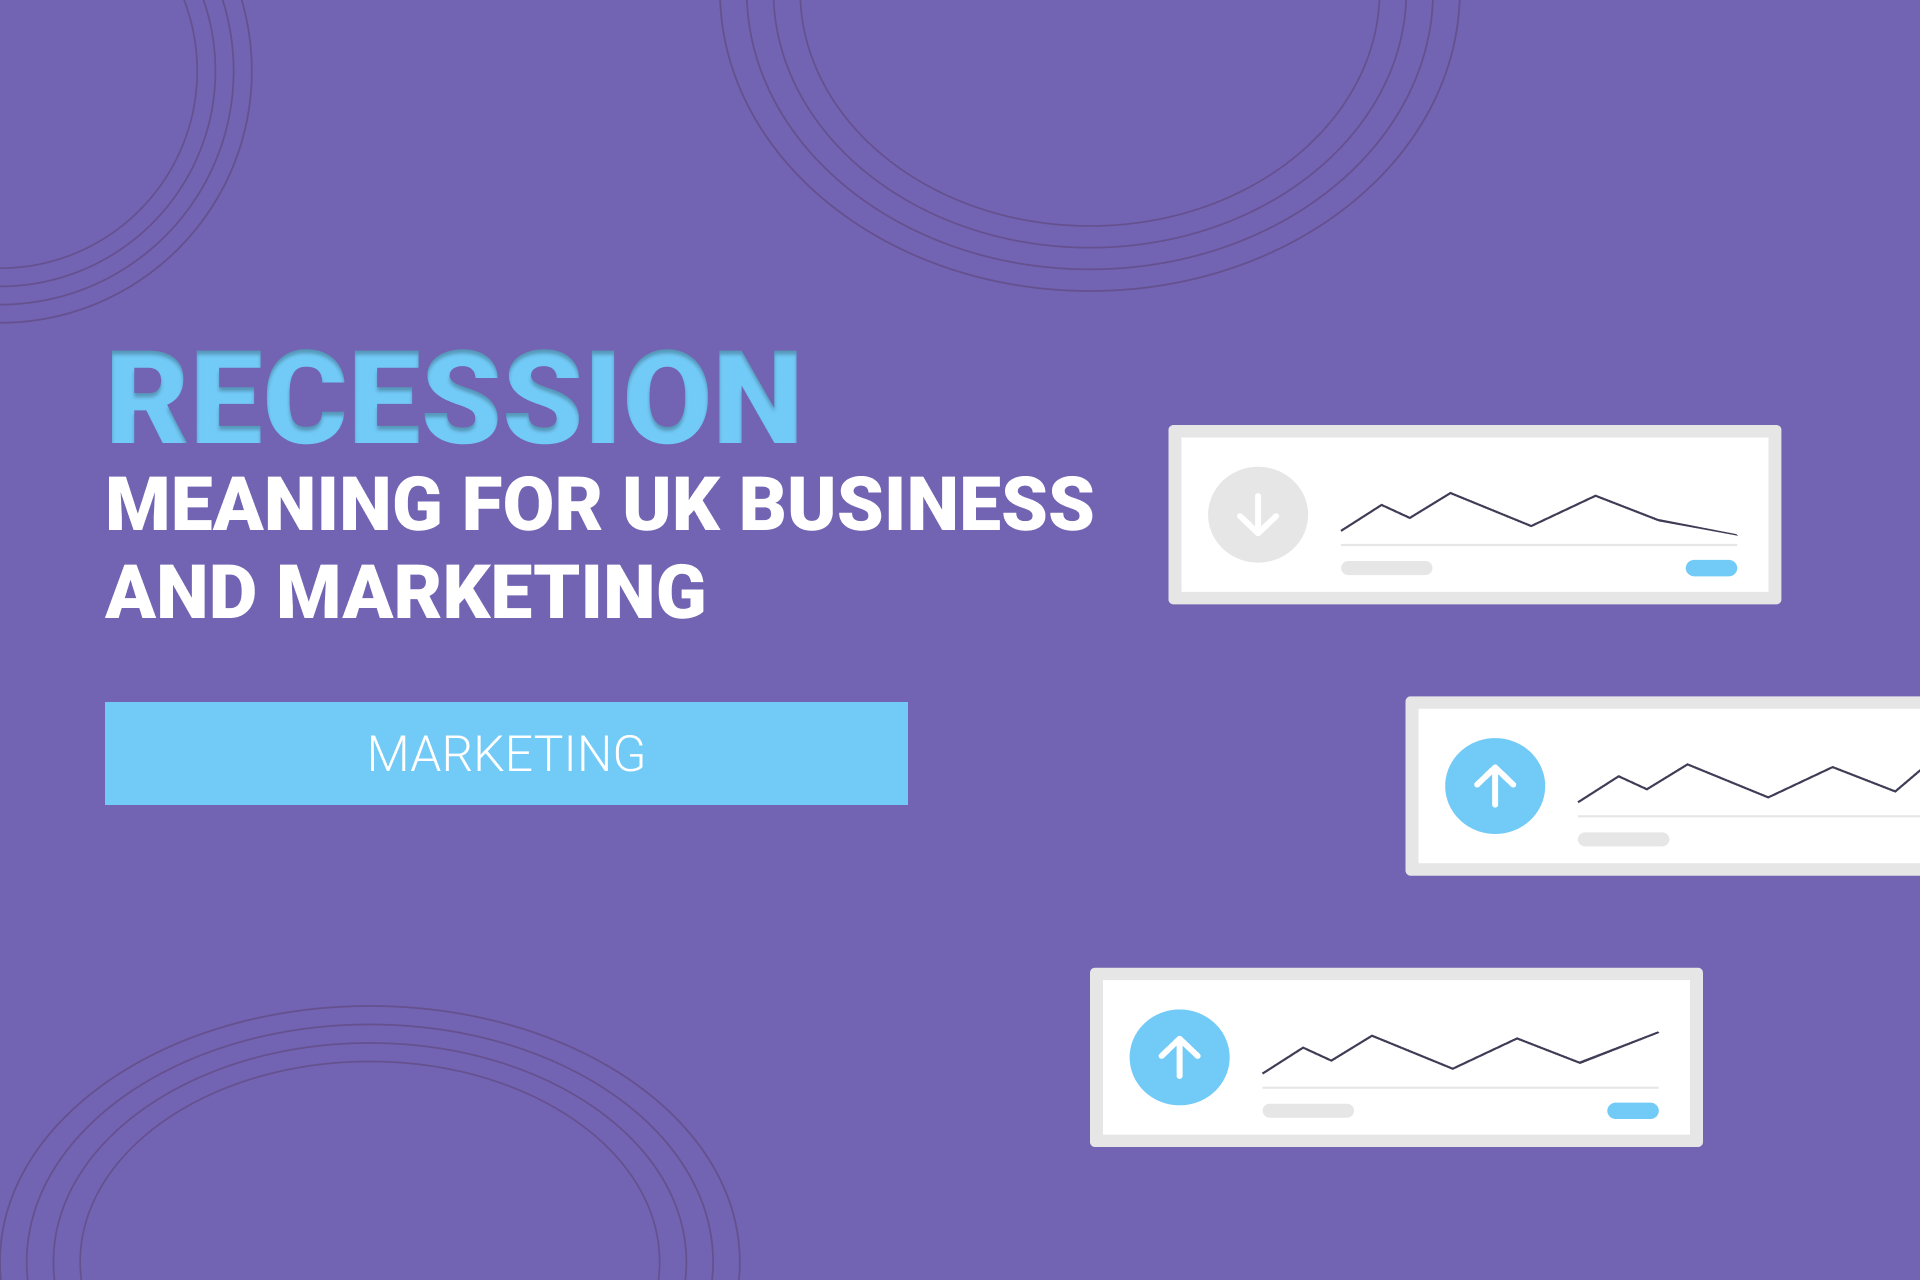 What a Recession Means For UK Marketing and Businesses